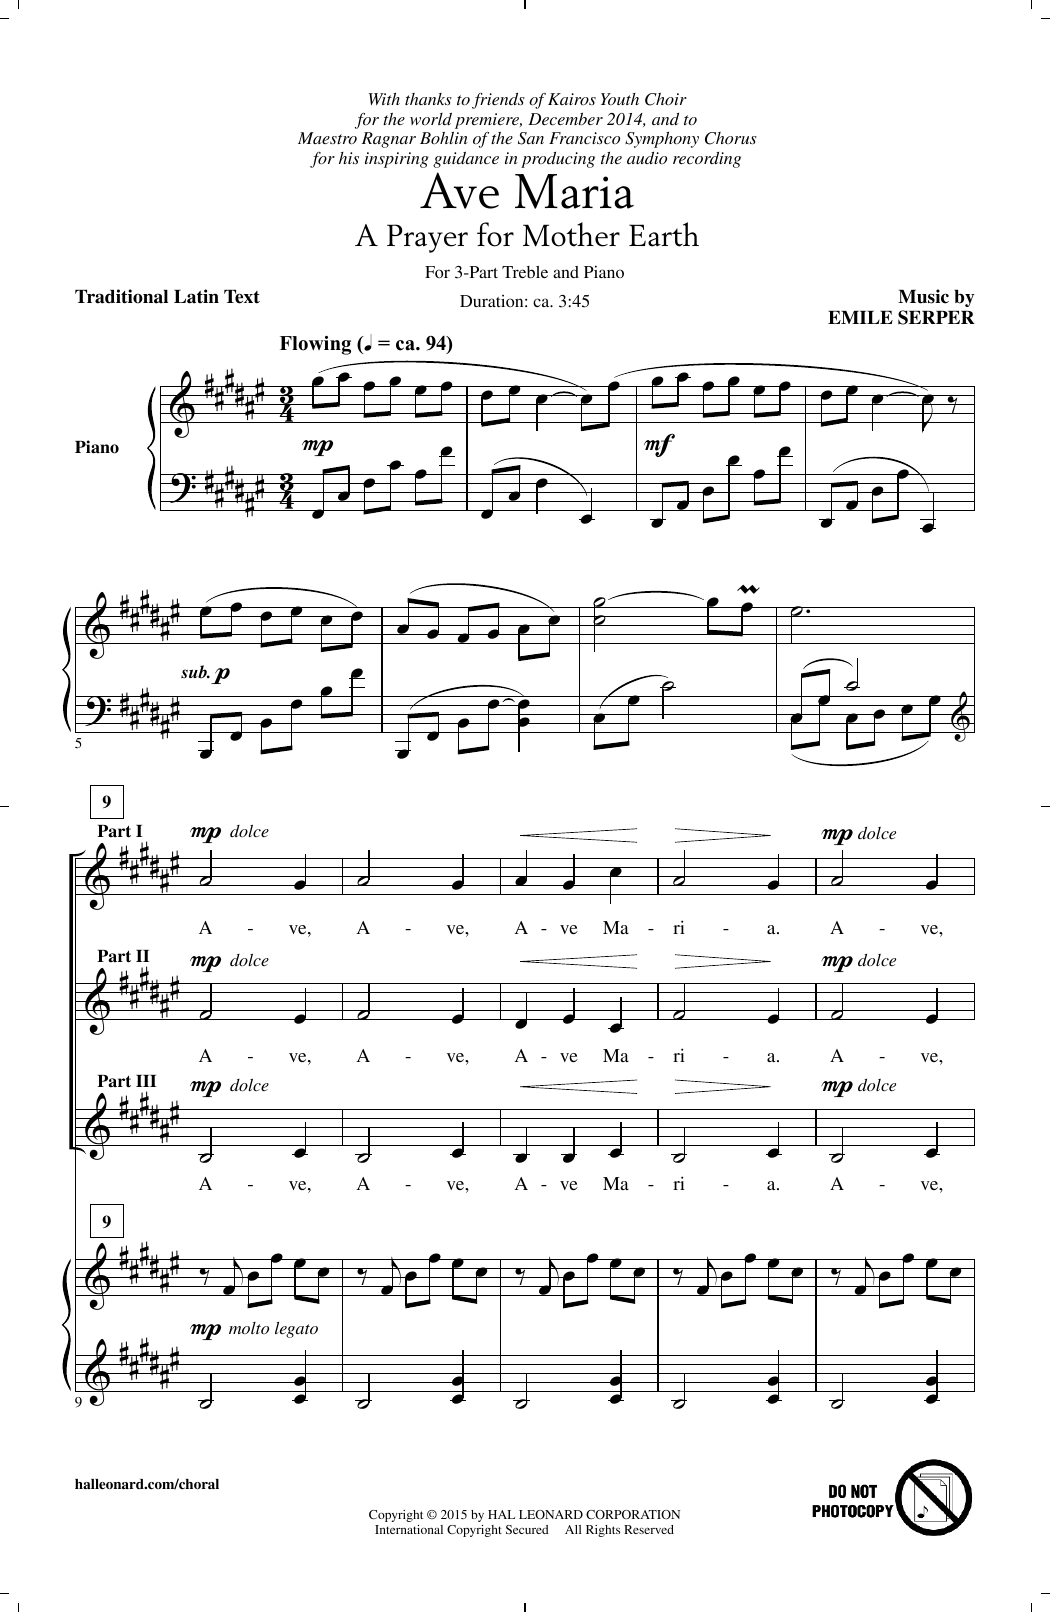 Emile Serper Ave Maria sheet music notes and chords. Download Printable PDF.